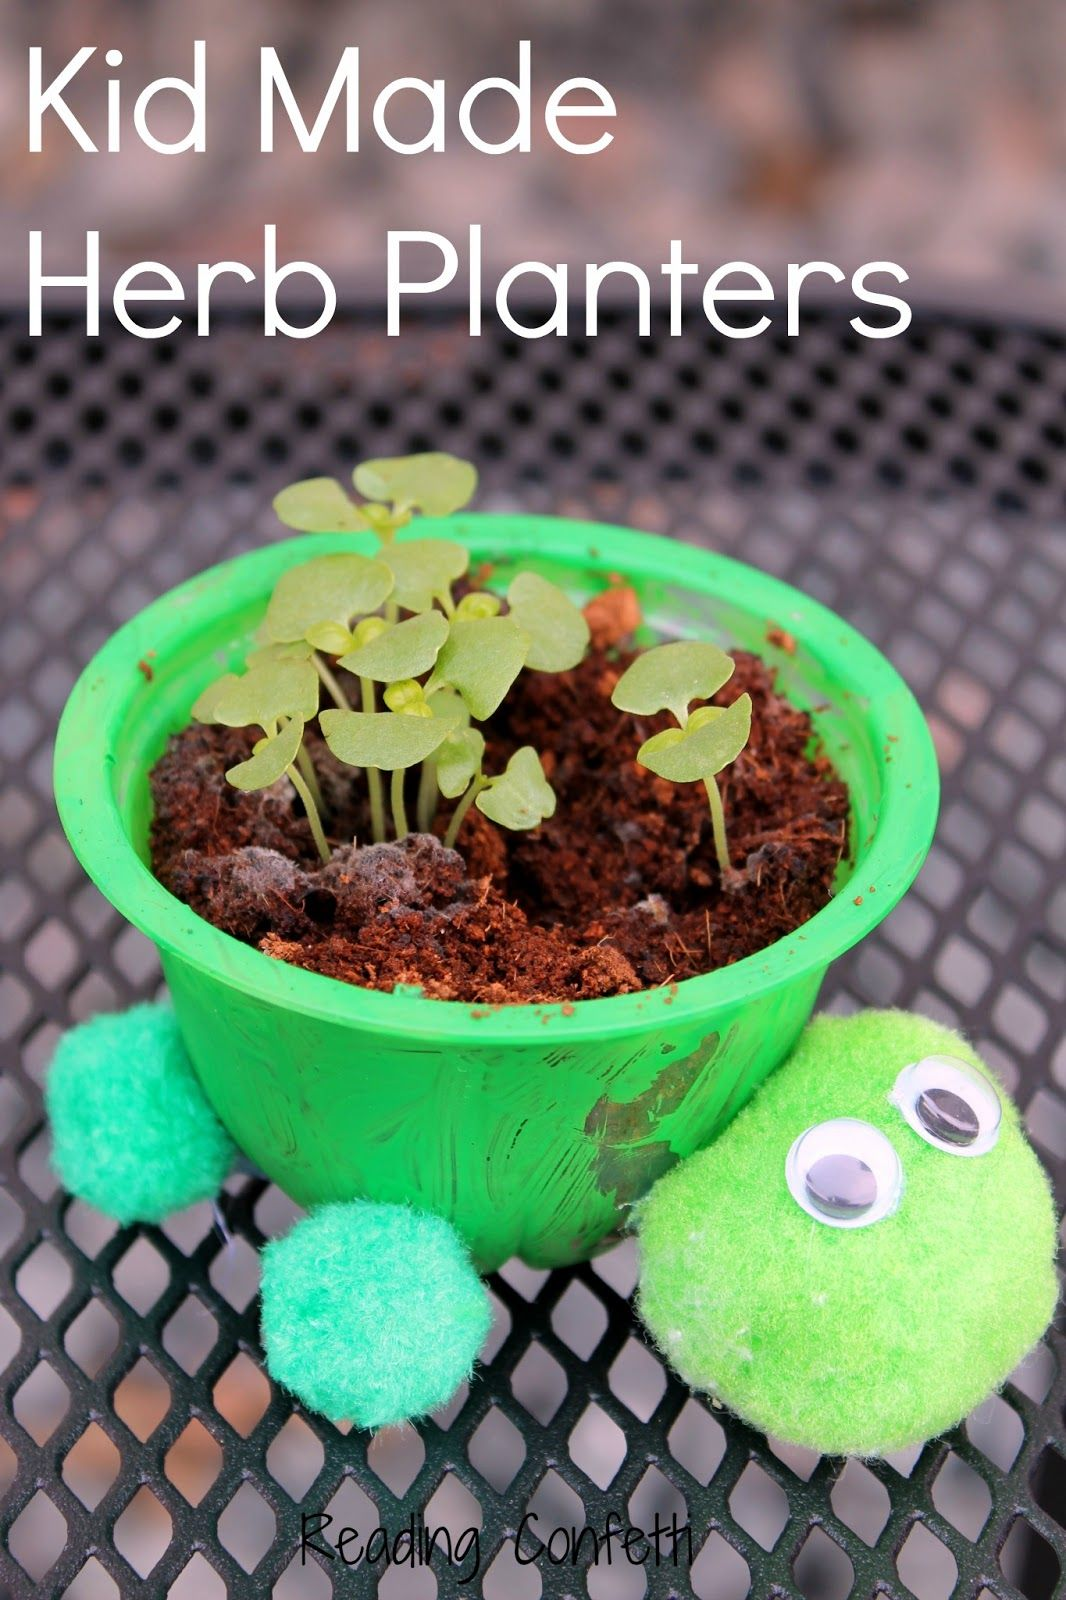 A Fun Way To Make Herb Planters From Recycled Materials Includes A Literacy Extension